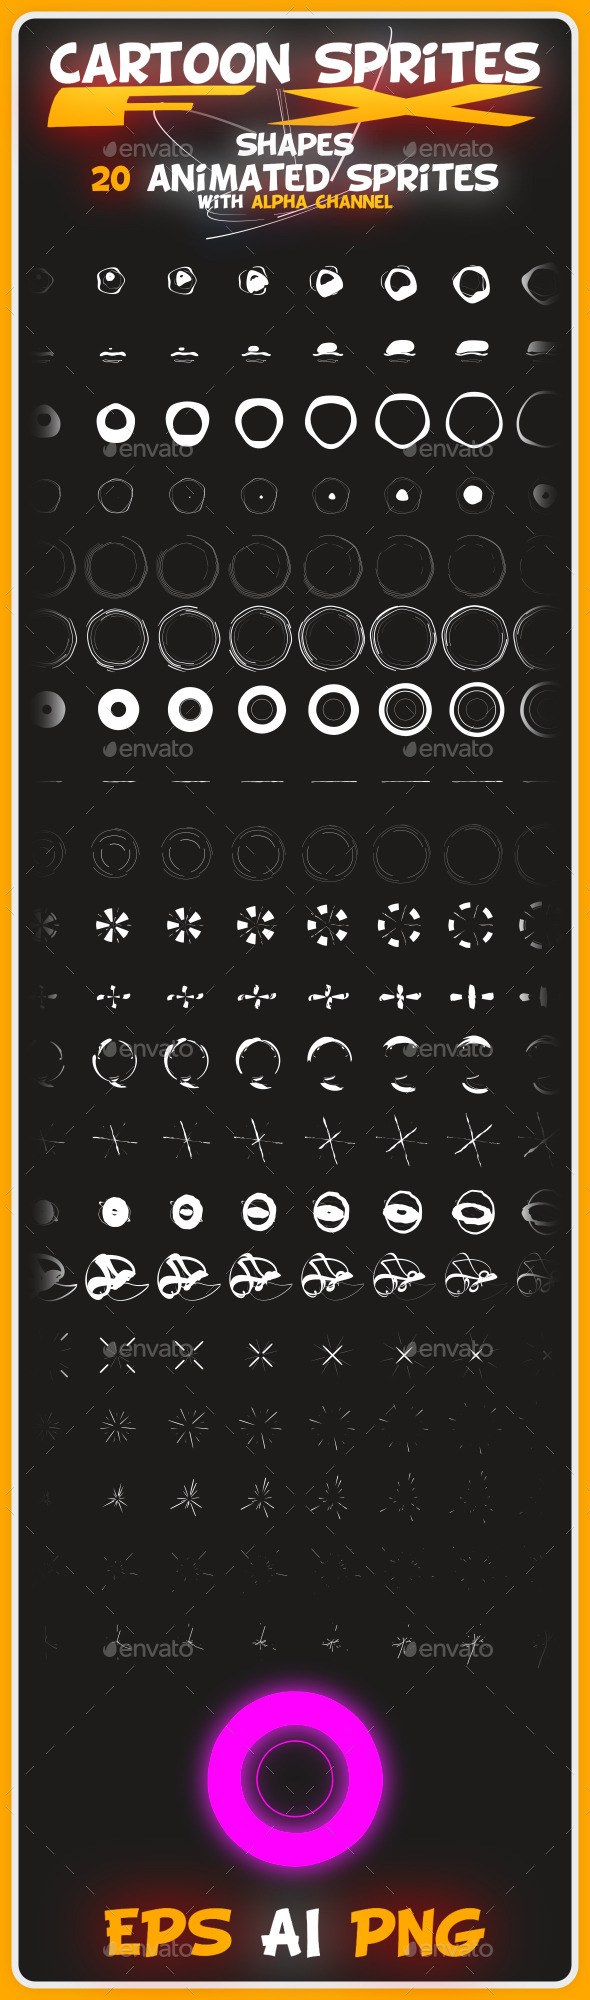 GraphicRiver Cartoon Sprites FX Shapes 8872899